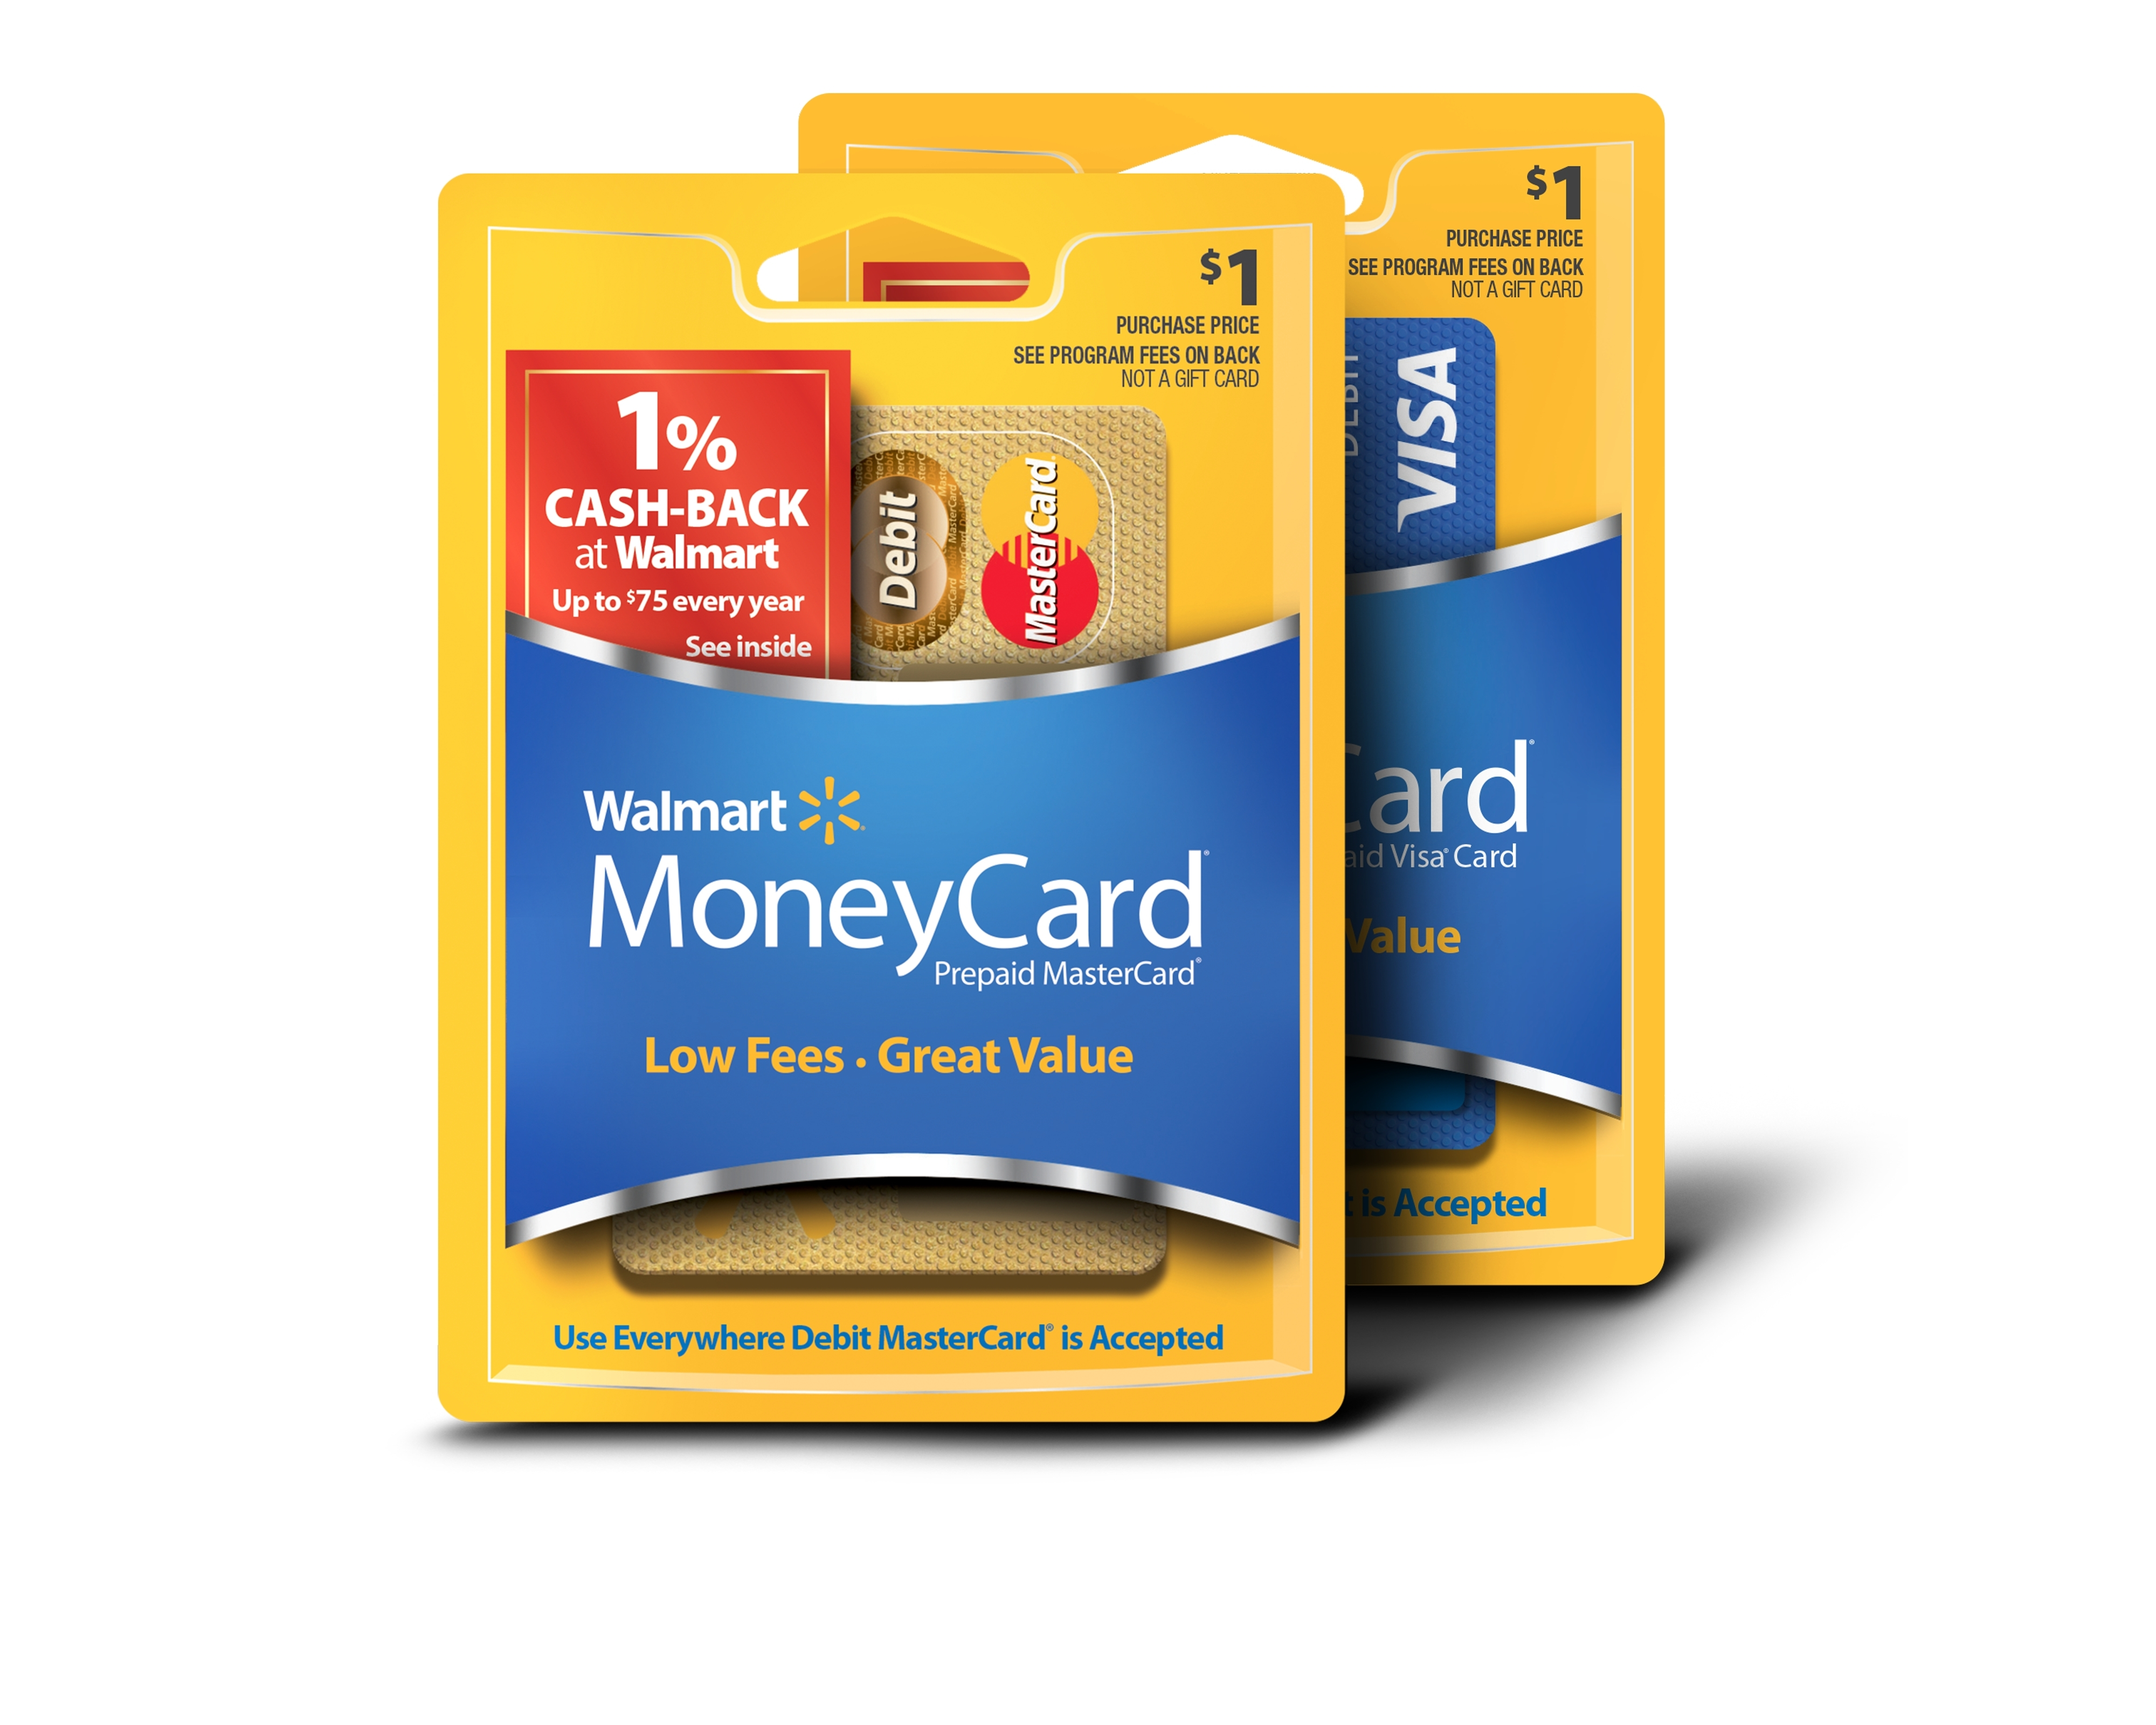 walmarts family of cards makes it as easy as 3 2 1 to manage finances for less business wire - Prepaid Money Cards